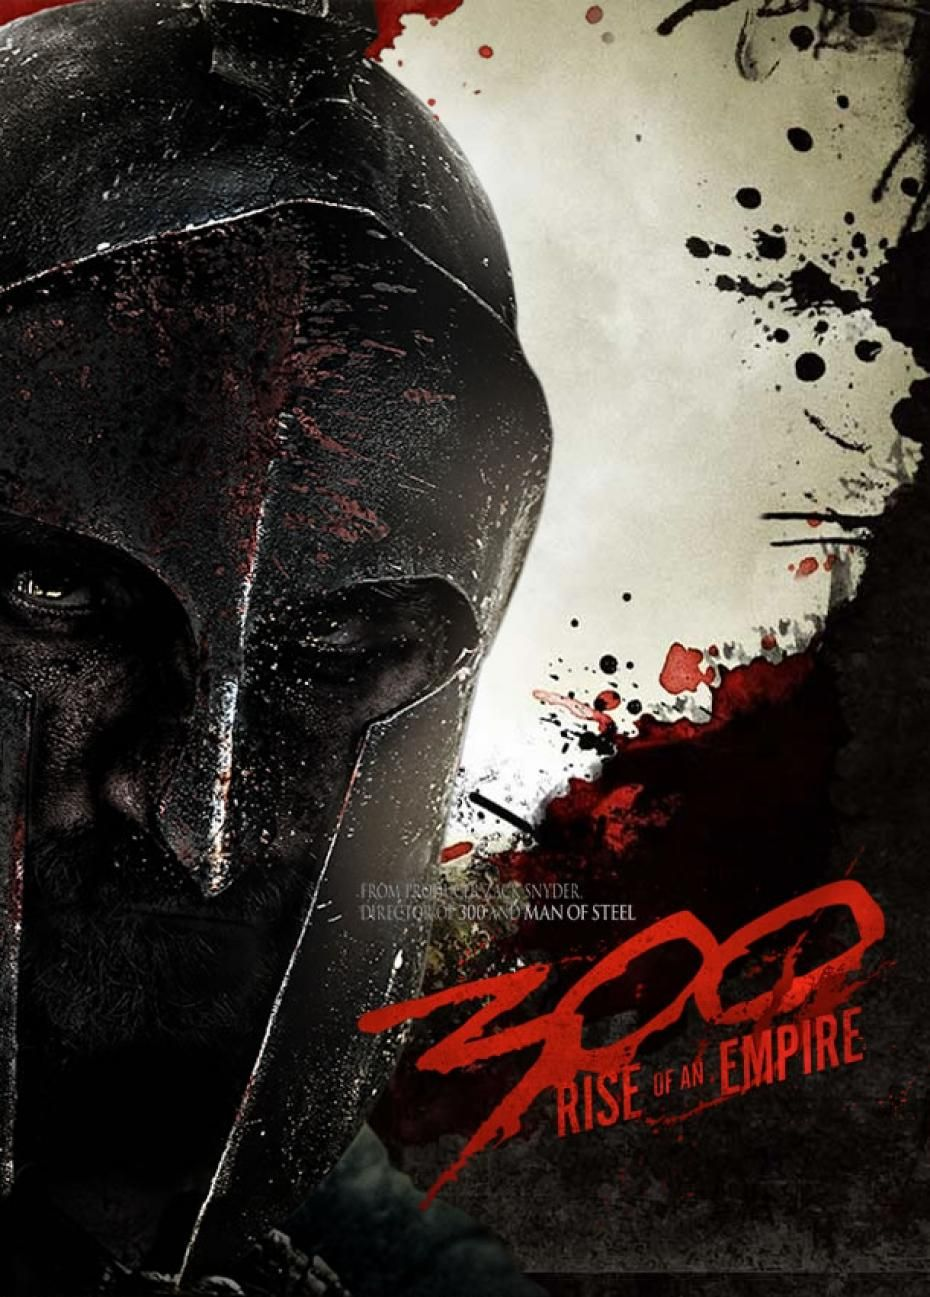 300 Rise Of An Empire Movie Poster Hd Wallpapers 300 Rise